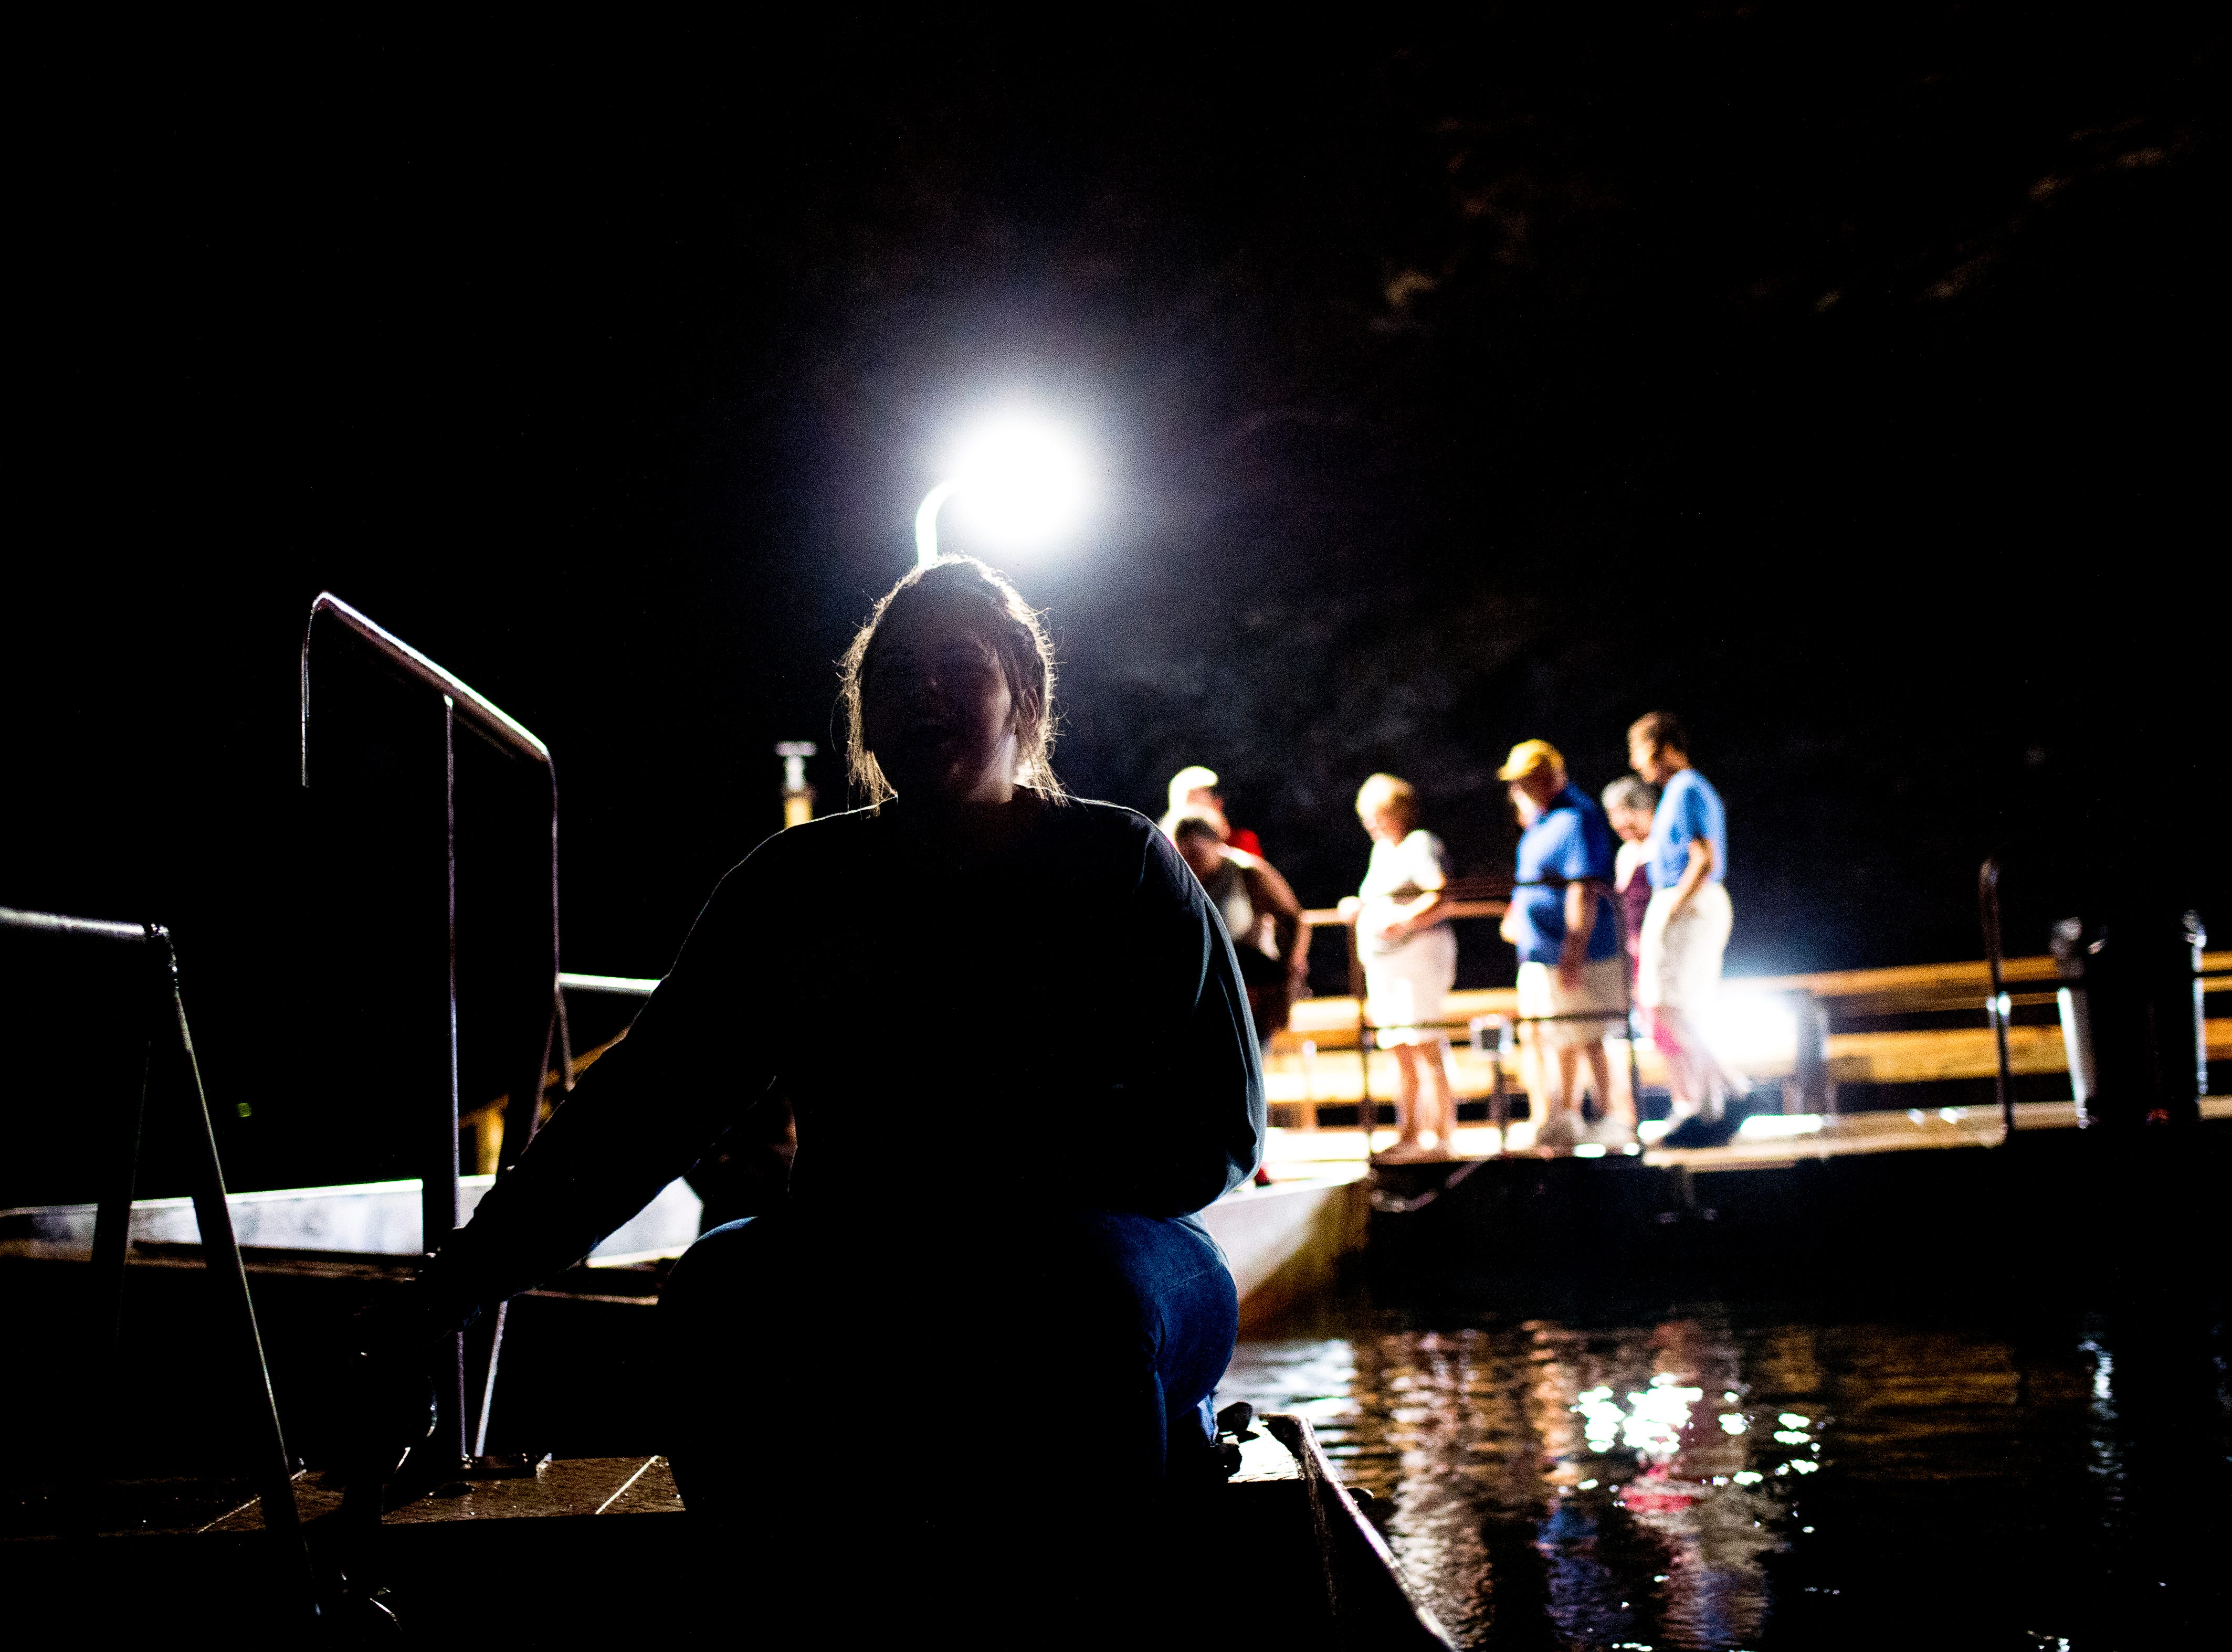 A tour guide leads the boat ride at the Lost Sea Adventure underground cave attraction outside of Sweetwater, Tennessee on Wednesday, August 15, 2018. The cave system dates back some 20,000 years and today features points of interests like an old moonshine still, rock formations, Confederate Army graffiti and the popular boat ride in a natural lake stocked with 200 rainbow trout.